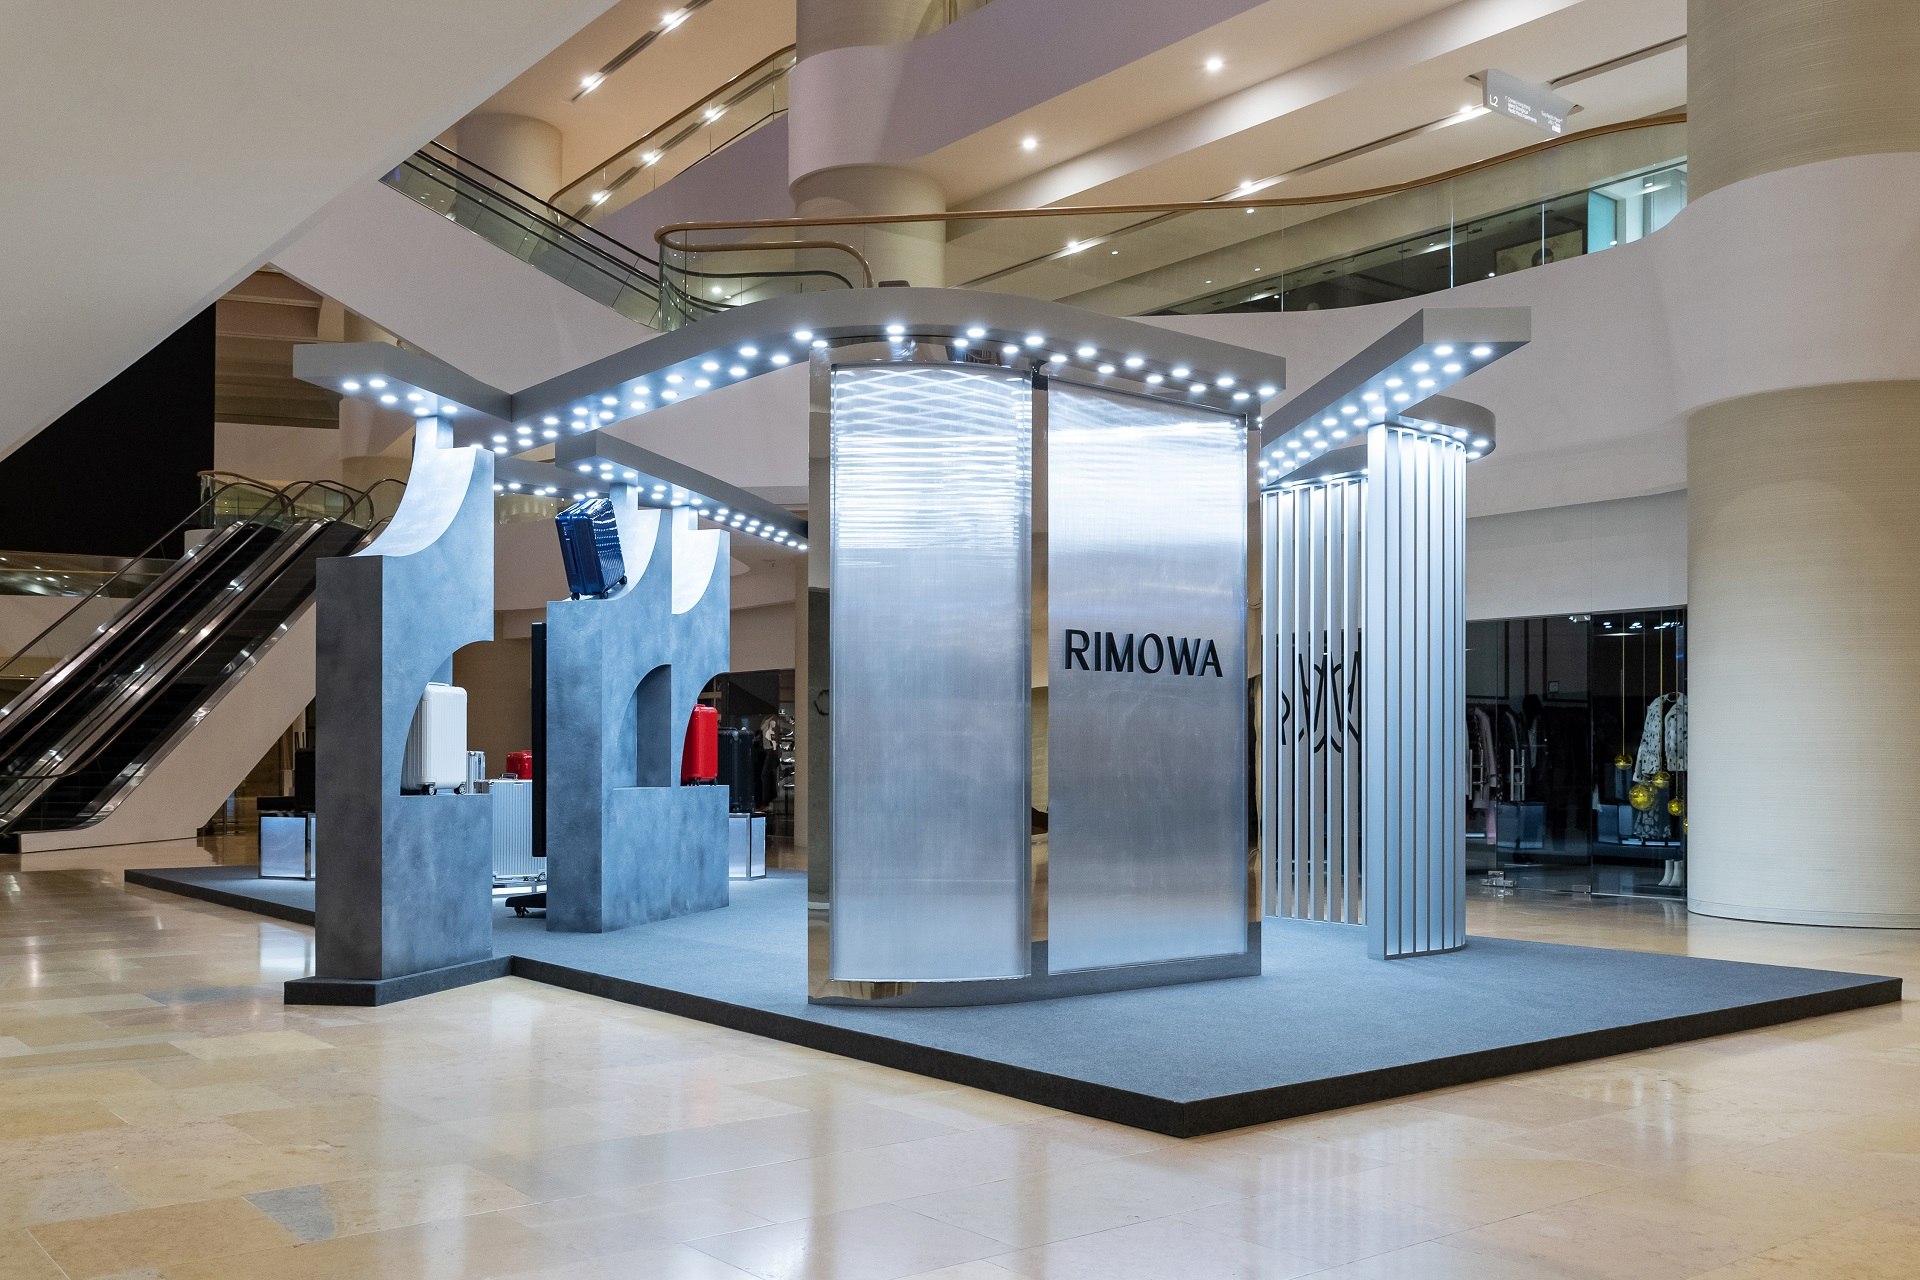 Shoppers can experience an exclusive interactive showcase at RIMOWA's Pacific Place store to celebrate the brand's 120th anniversary